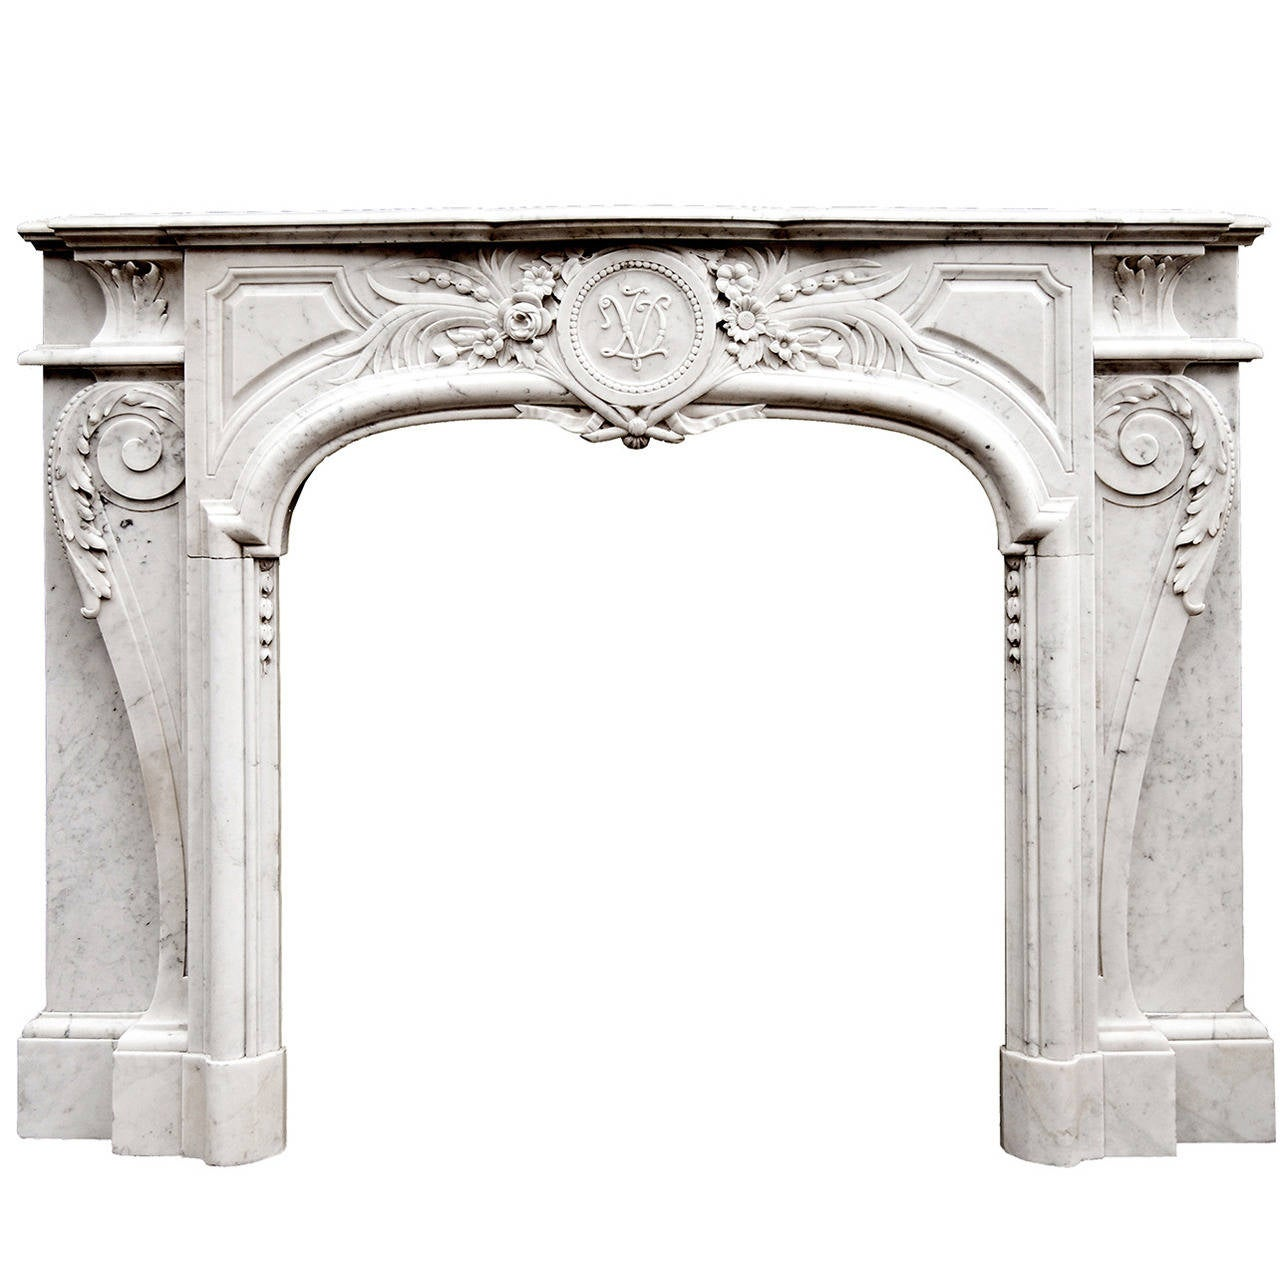 Louis XIV Style Carrara Marble Fireplace Mantel For Sale at 1stdibs